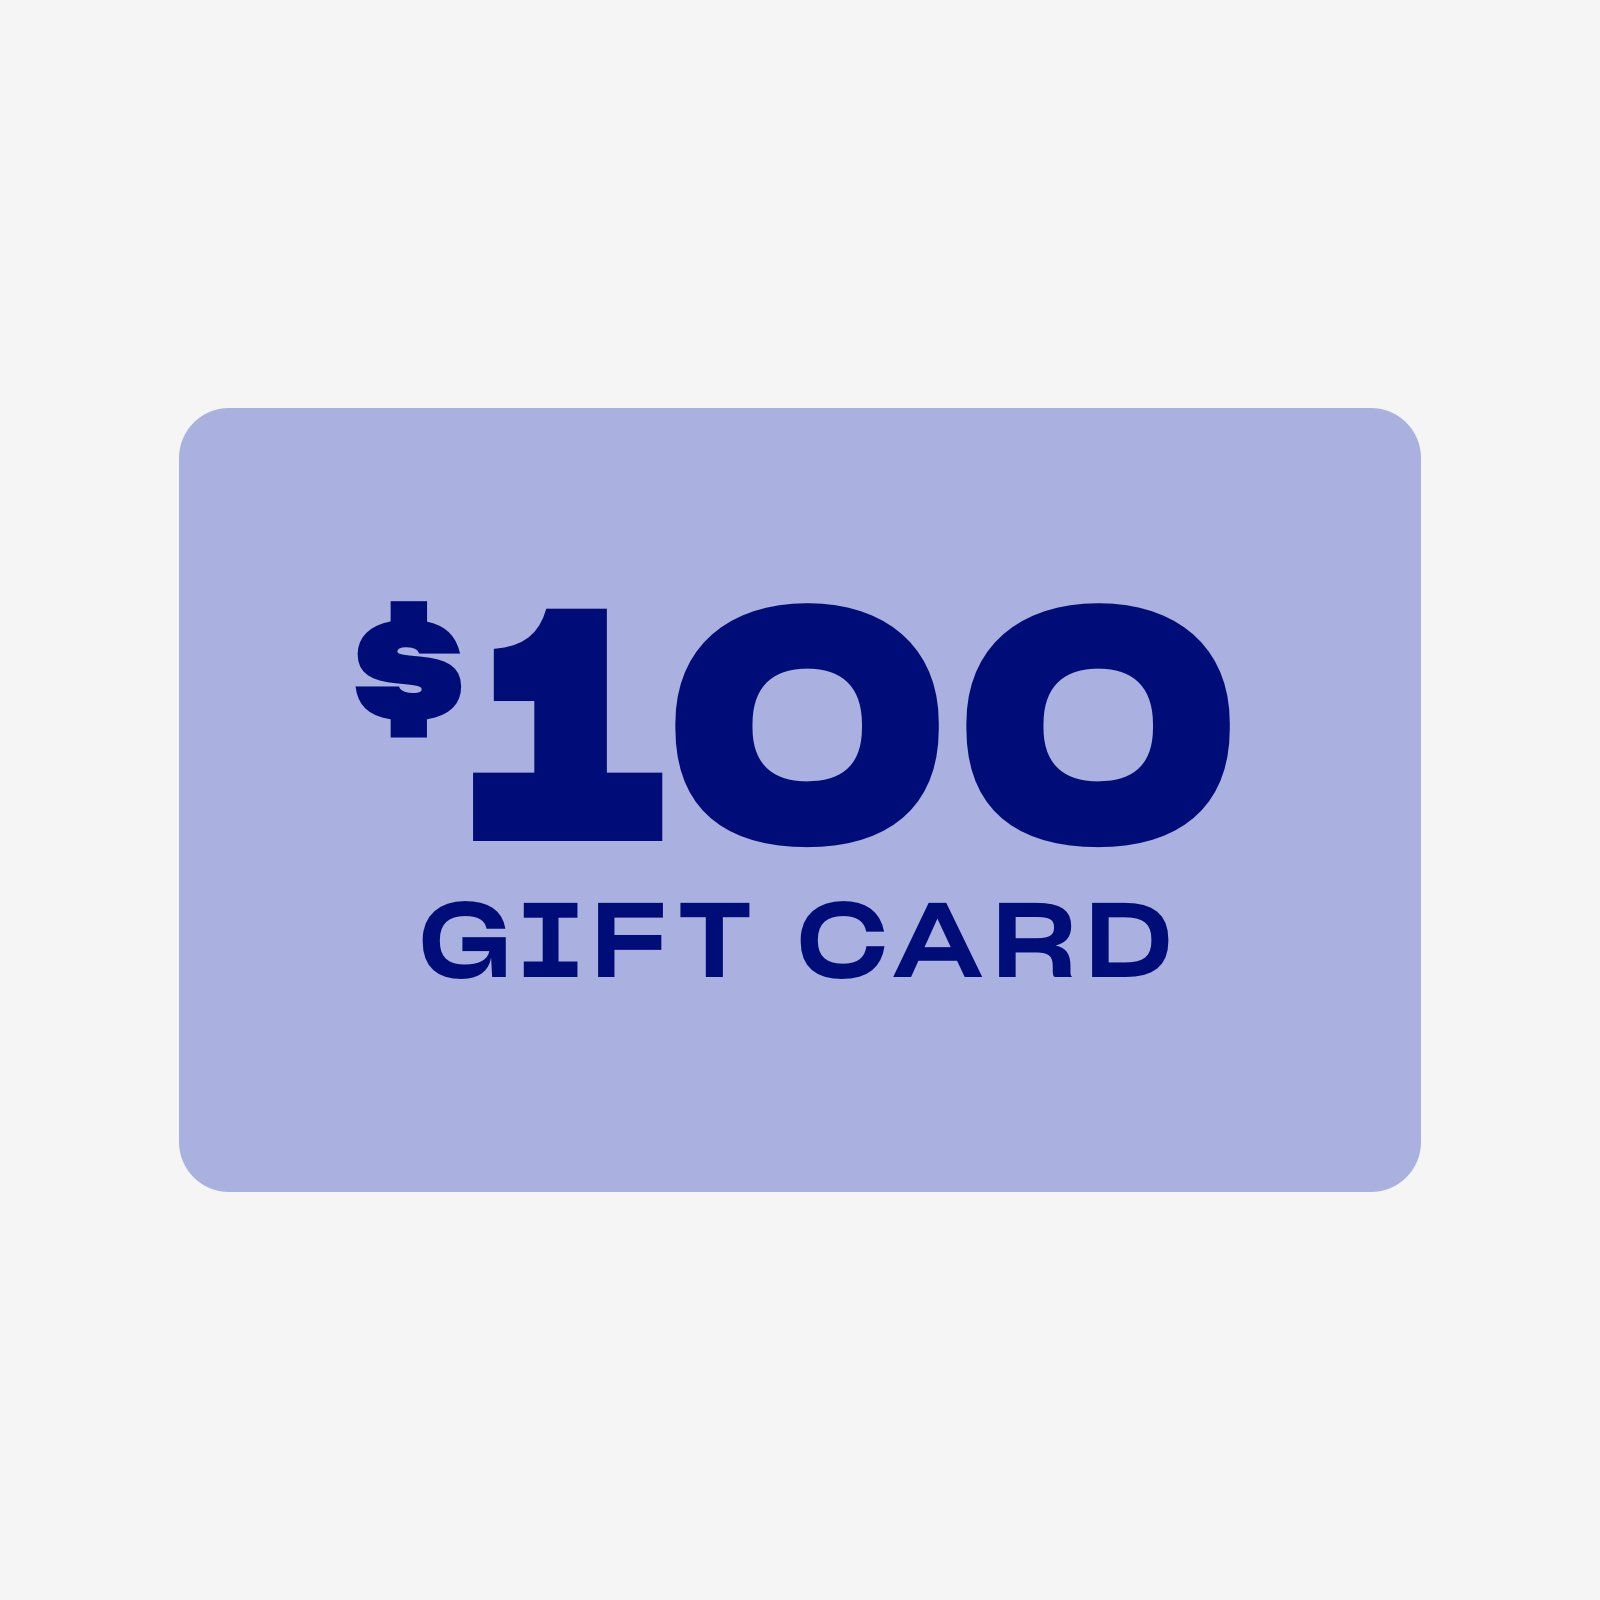 100 gift card in 2021 redeem gift card free gift card